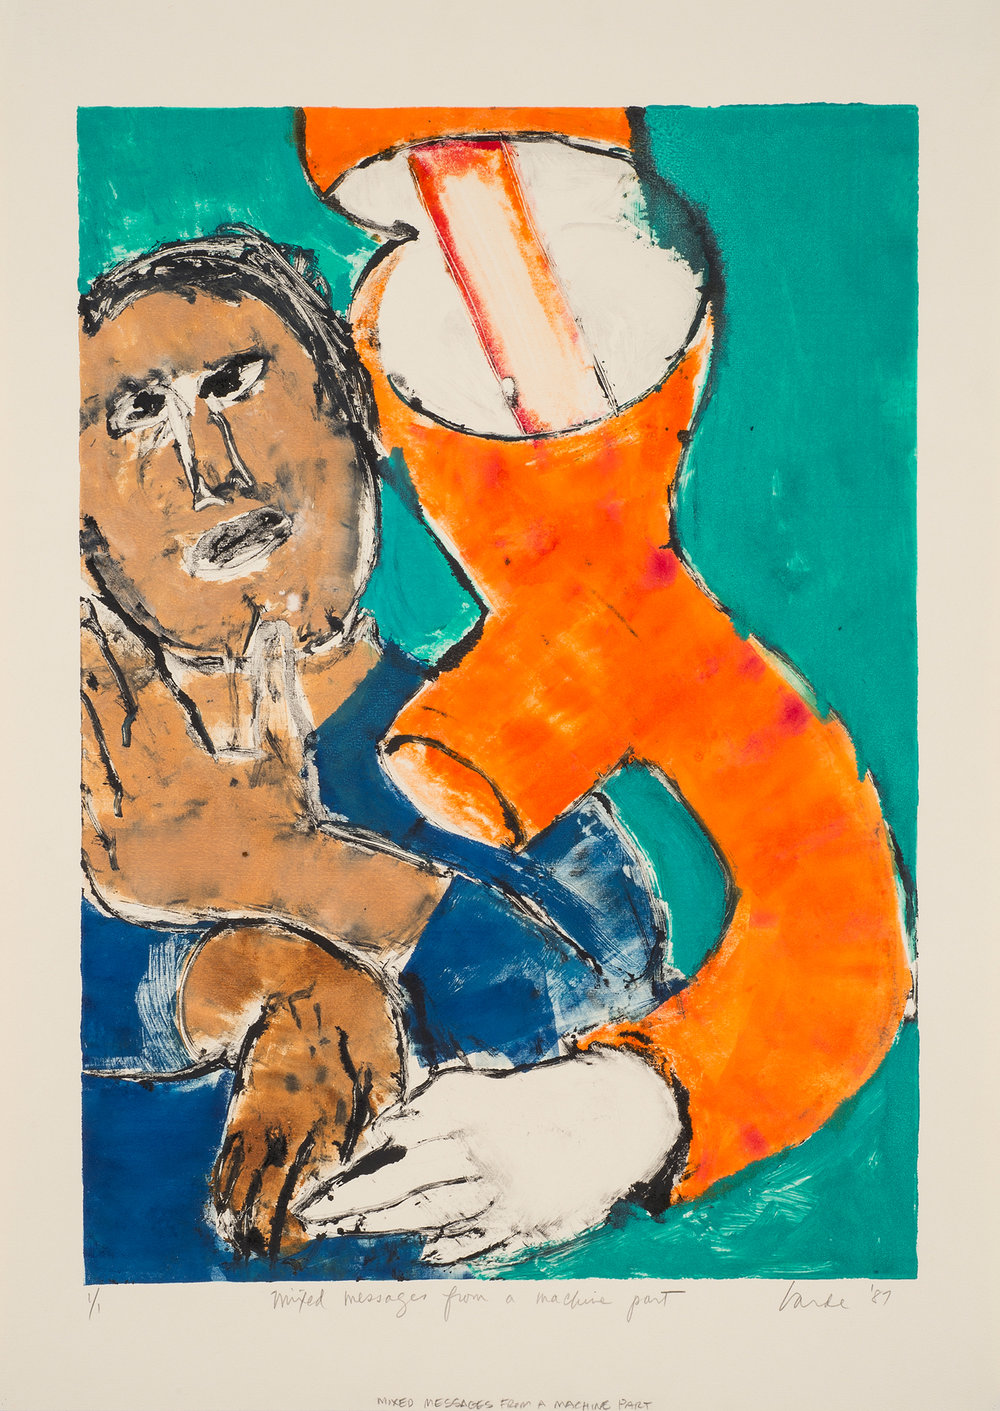 Mixed Messages From a Machine Part , 1987. Monotype on paper, 28 x 20 in. (71 x 51cm.)